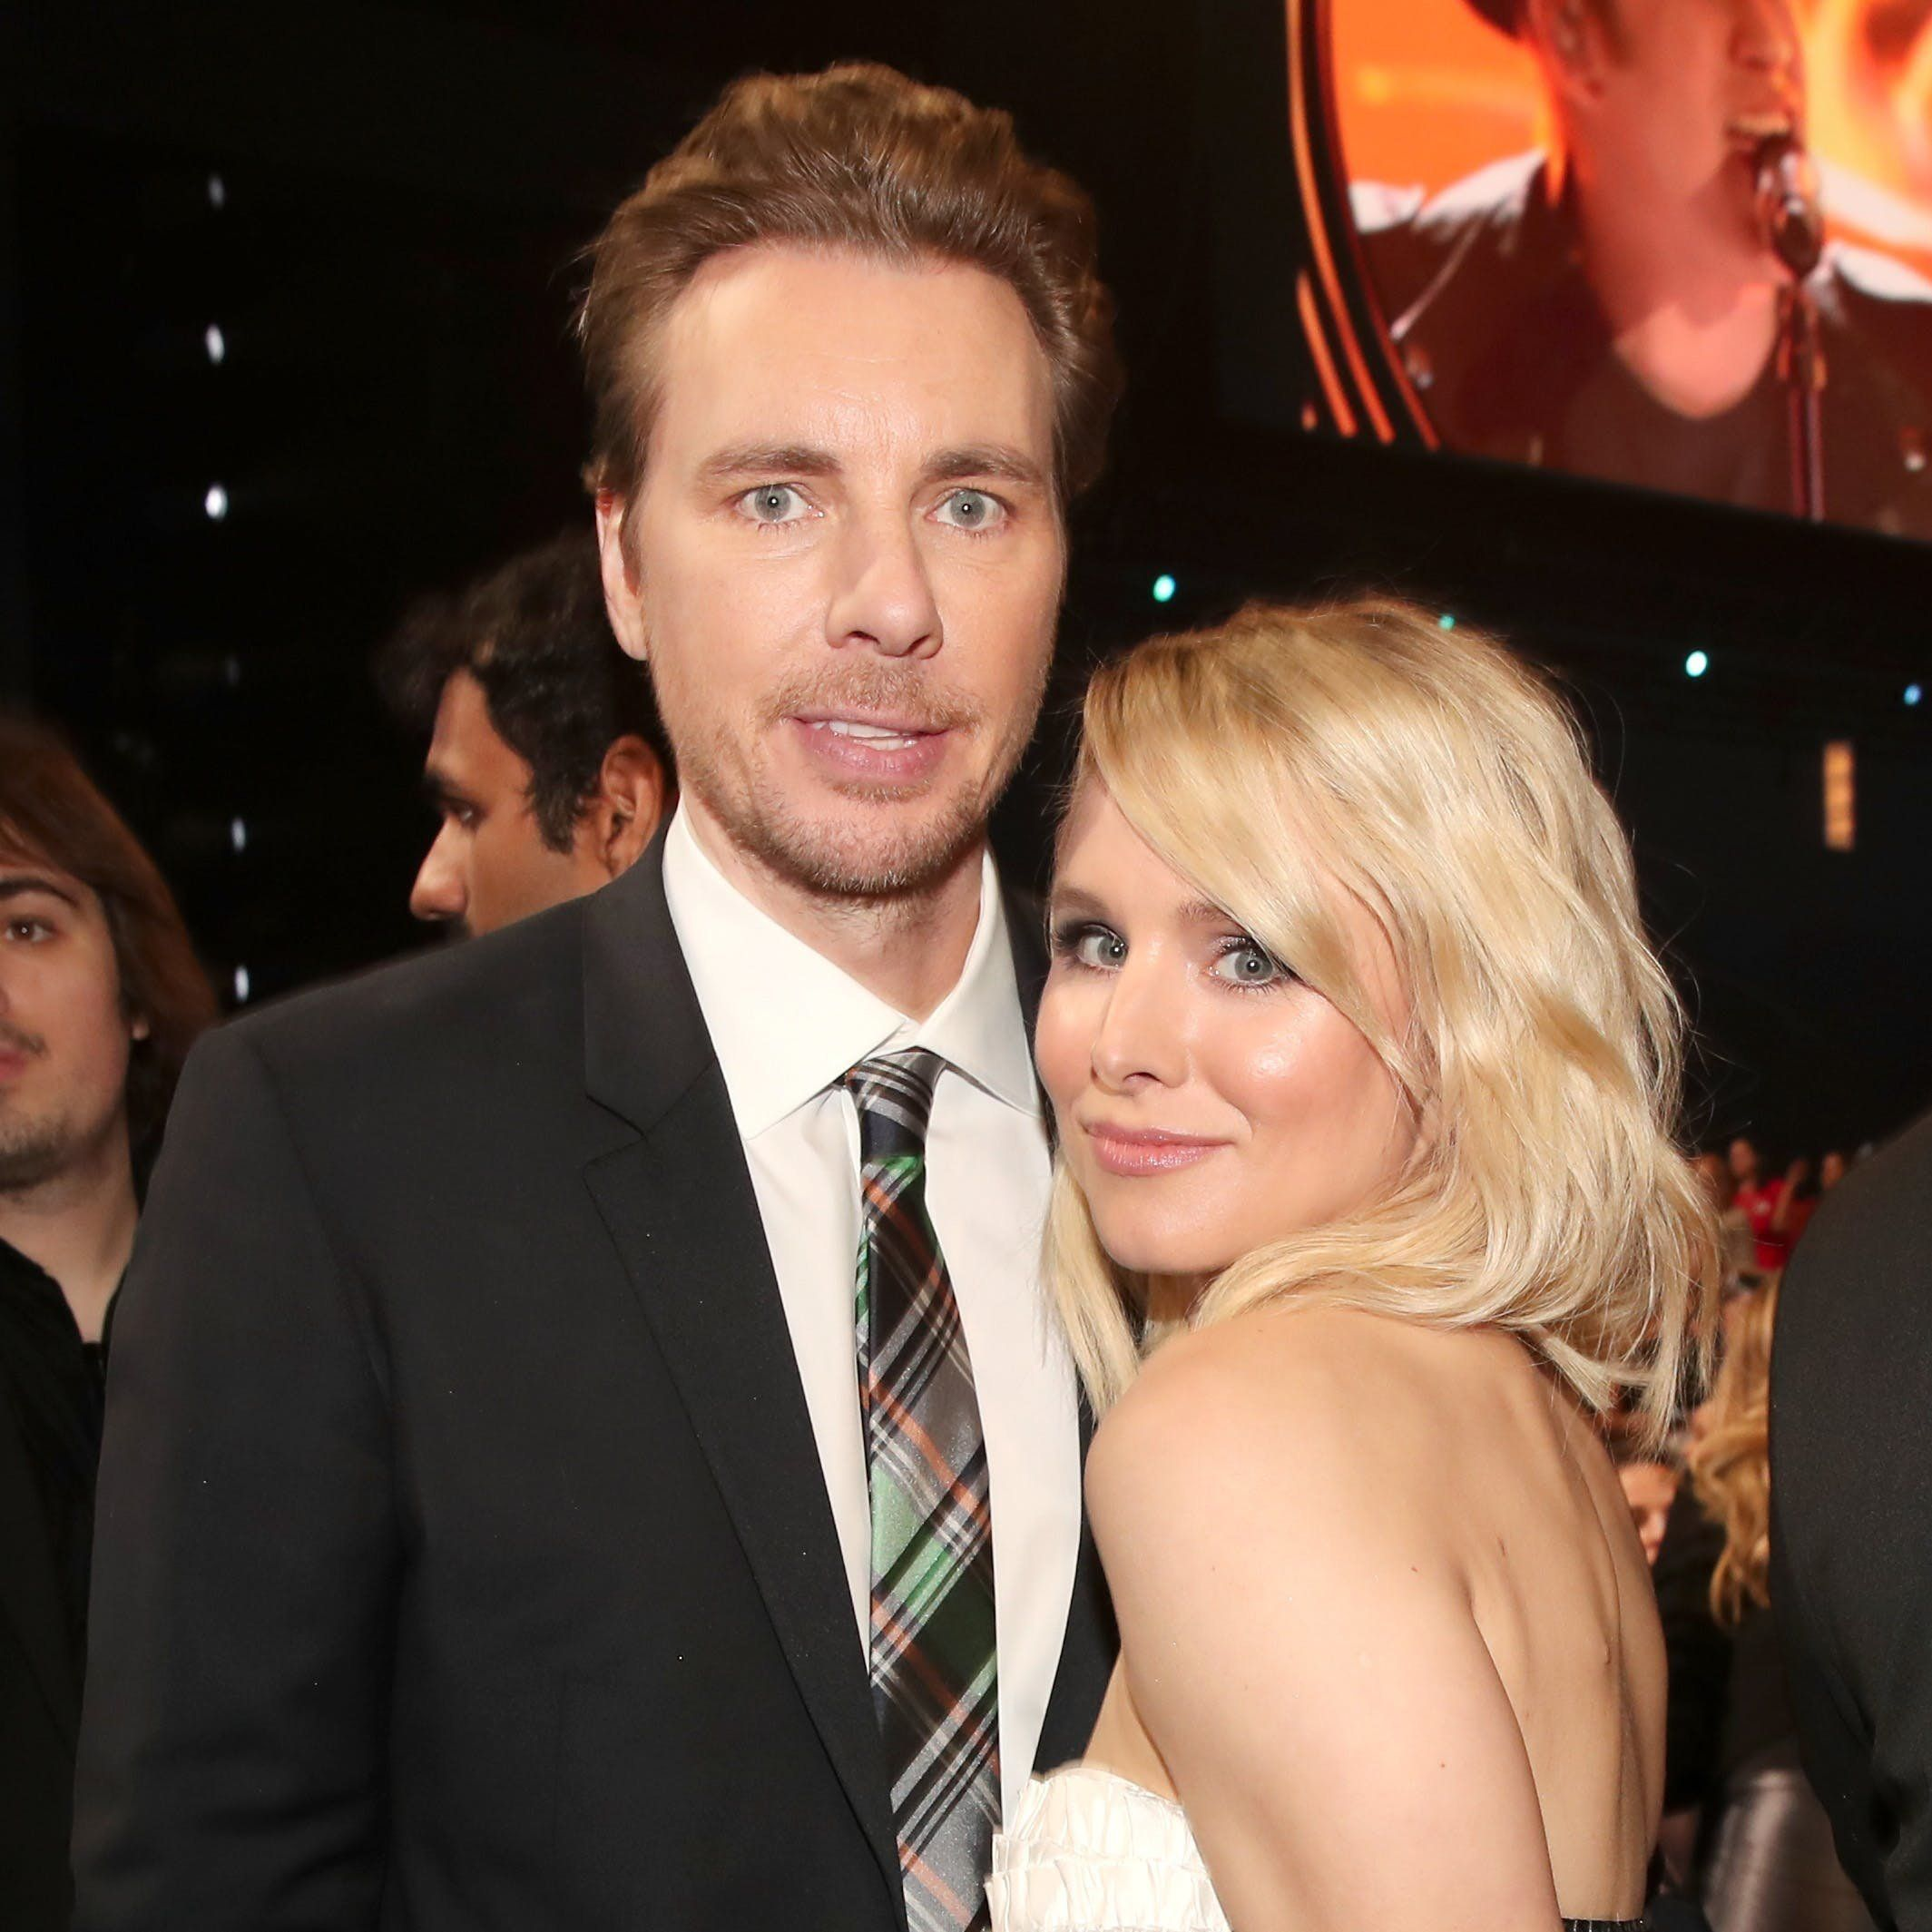 "<div><img width=""645"" height=""382"" alt=""""/></div>""You set an excellent example of being human.""<div><p><a rel=""nofollow"" href=""https://www.brit.co/kristen-bell-dax-shepard-sobriety-birthday/?utm_source=rss&utm_medium=rss&utm_campaign=kristen-bell-dax-shepard-sobriety-birthday""> Read More...</a></p></div>"